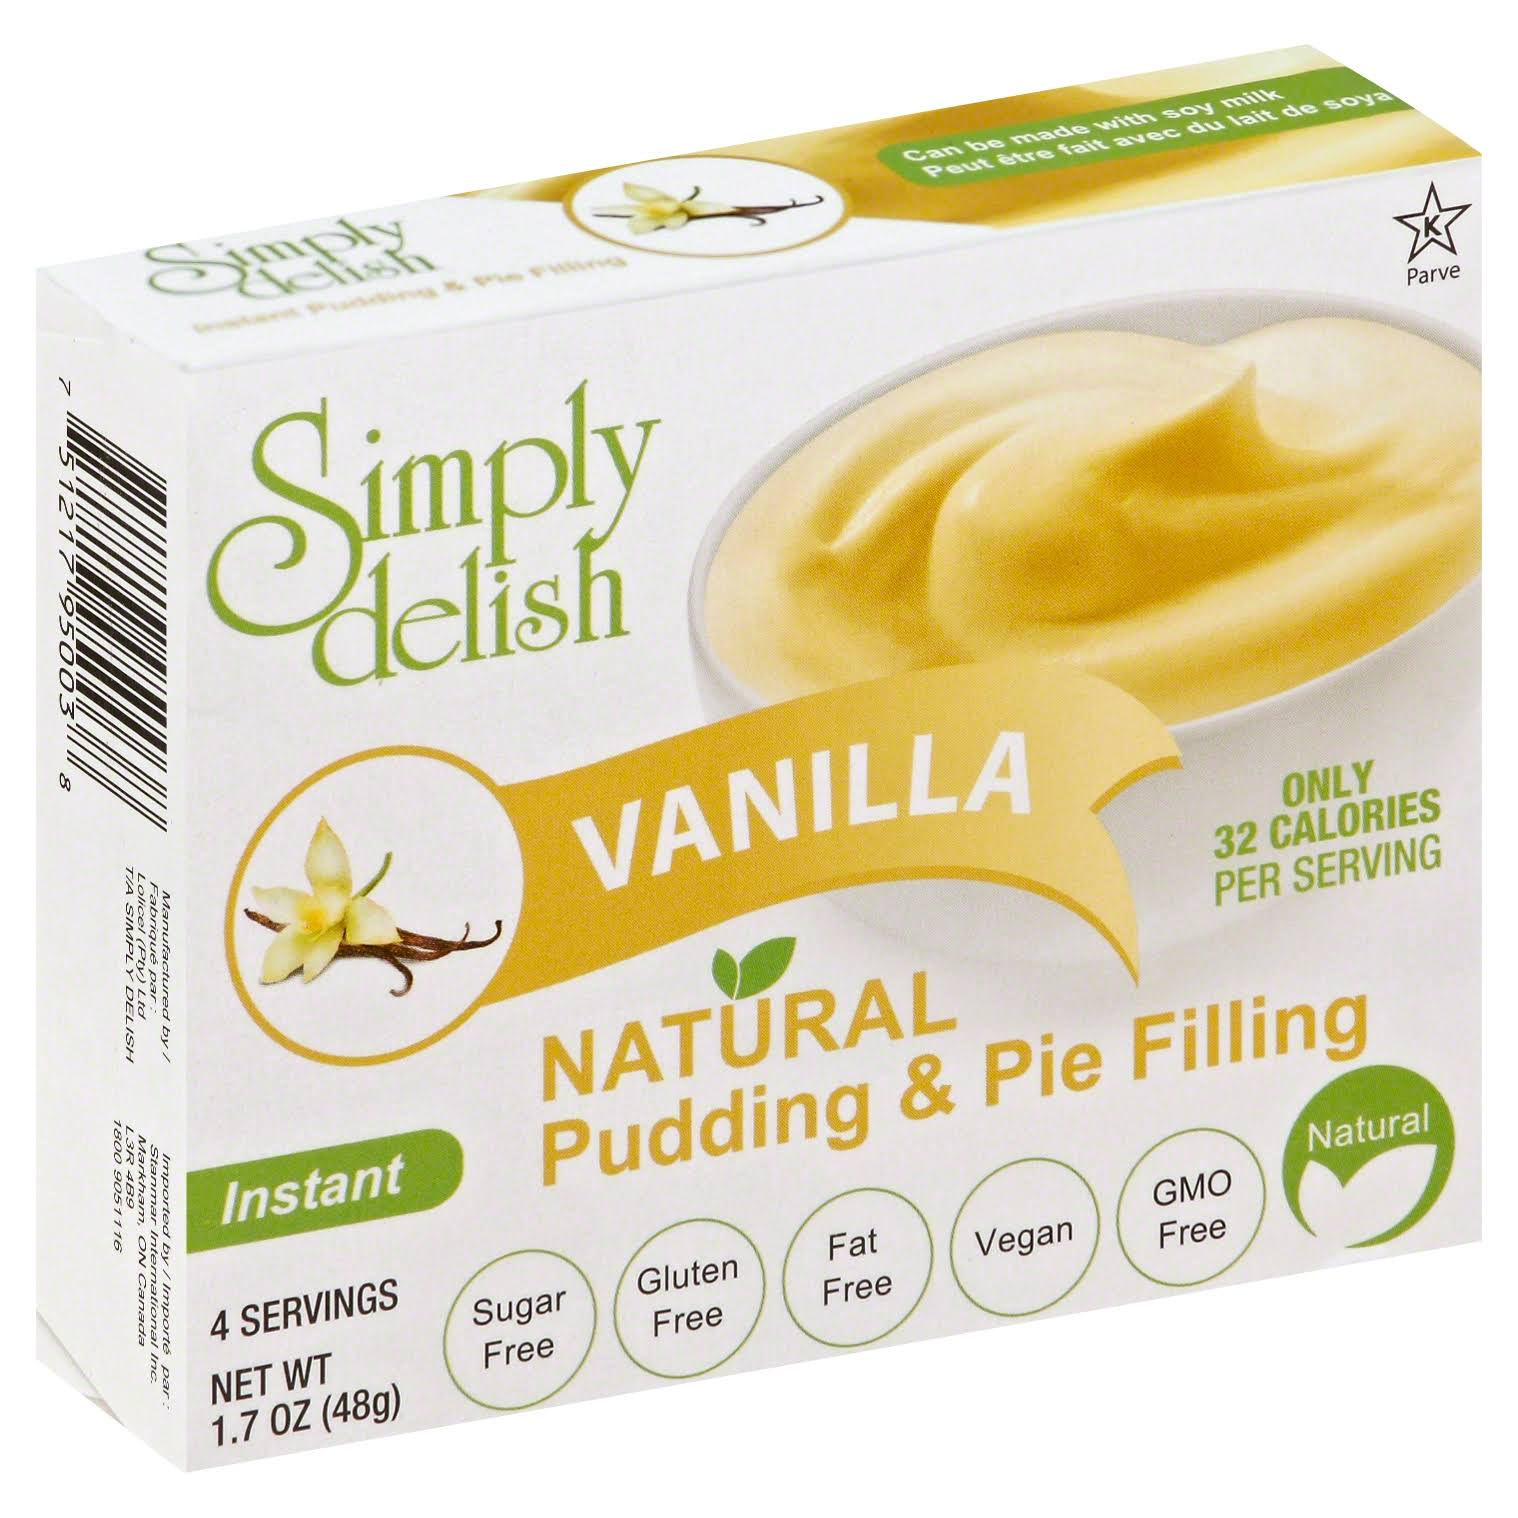 Simply Delish Vanilla Pudding Mix - 6 x 1.oz